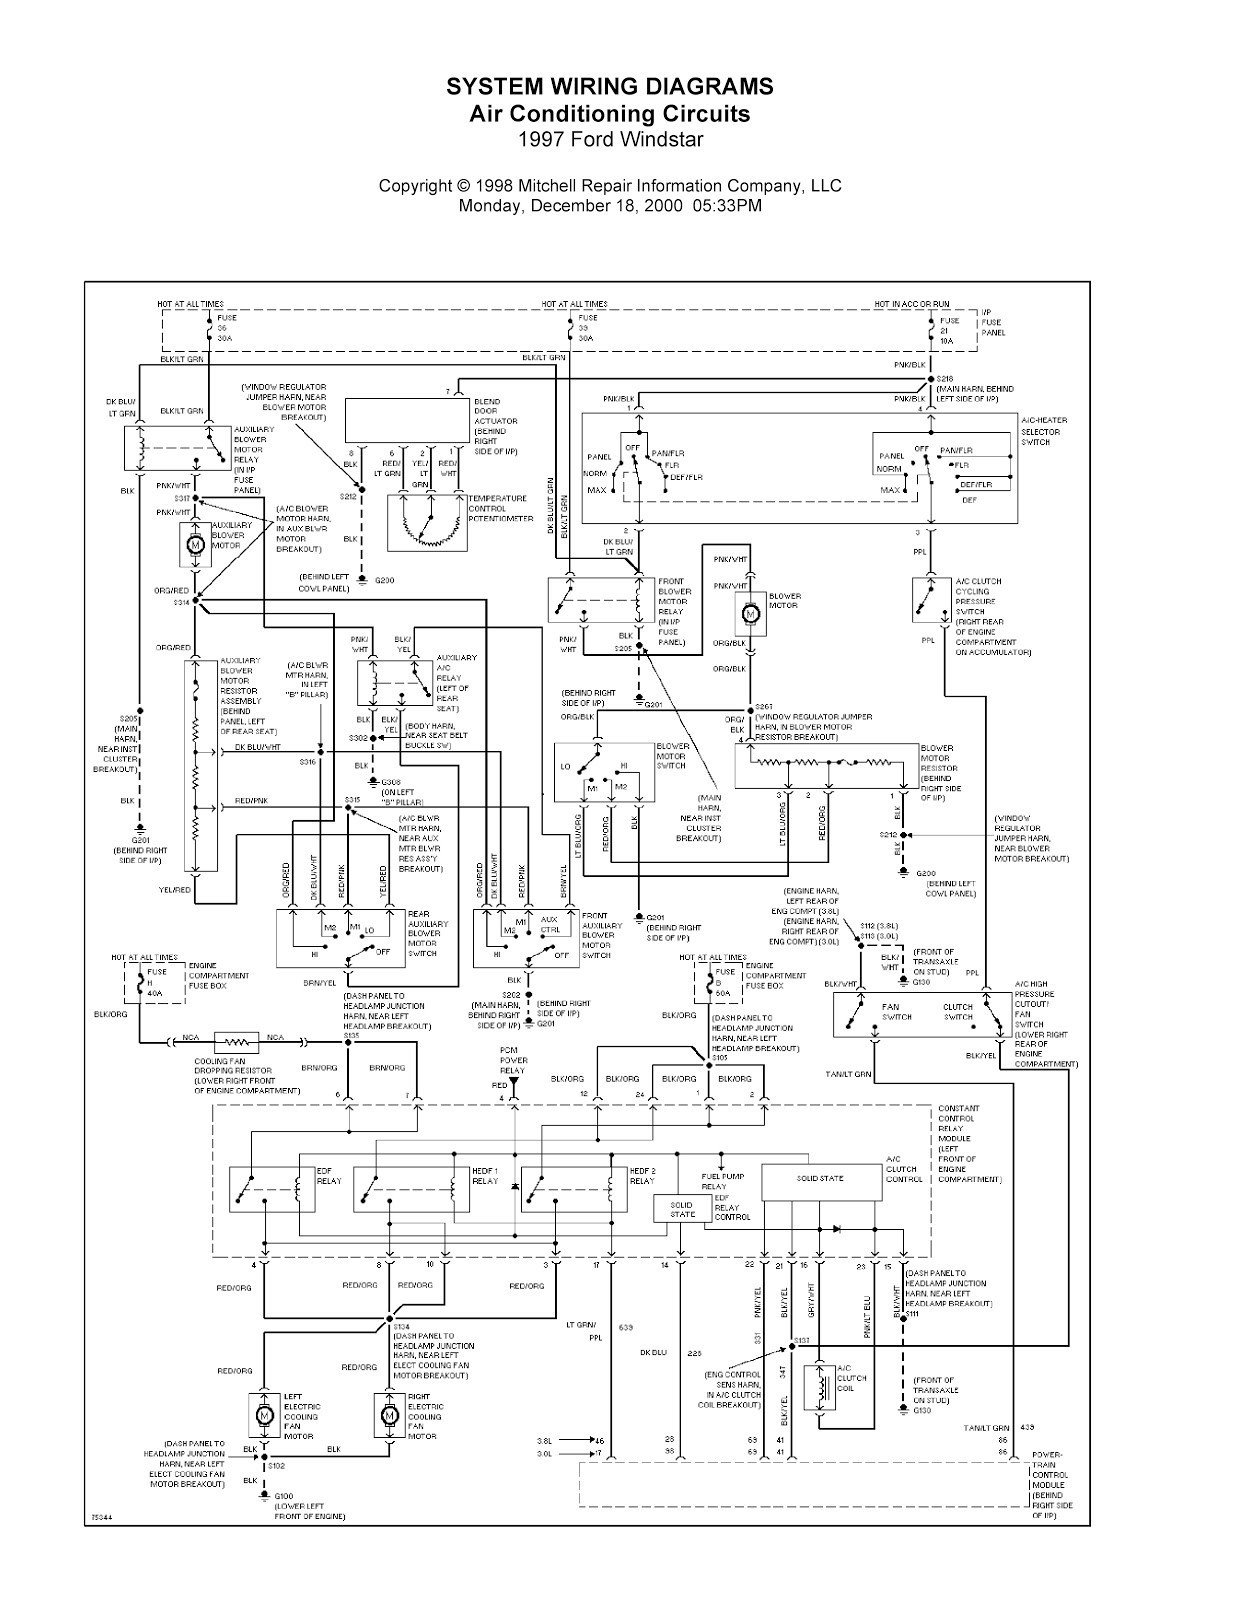 hight resolution of ford expedition engine diagram ford expedition fuel pump jpg 1236x1600 ford expedition engine diagram